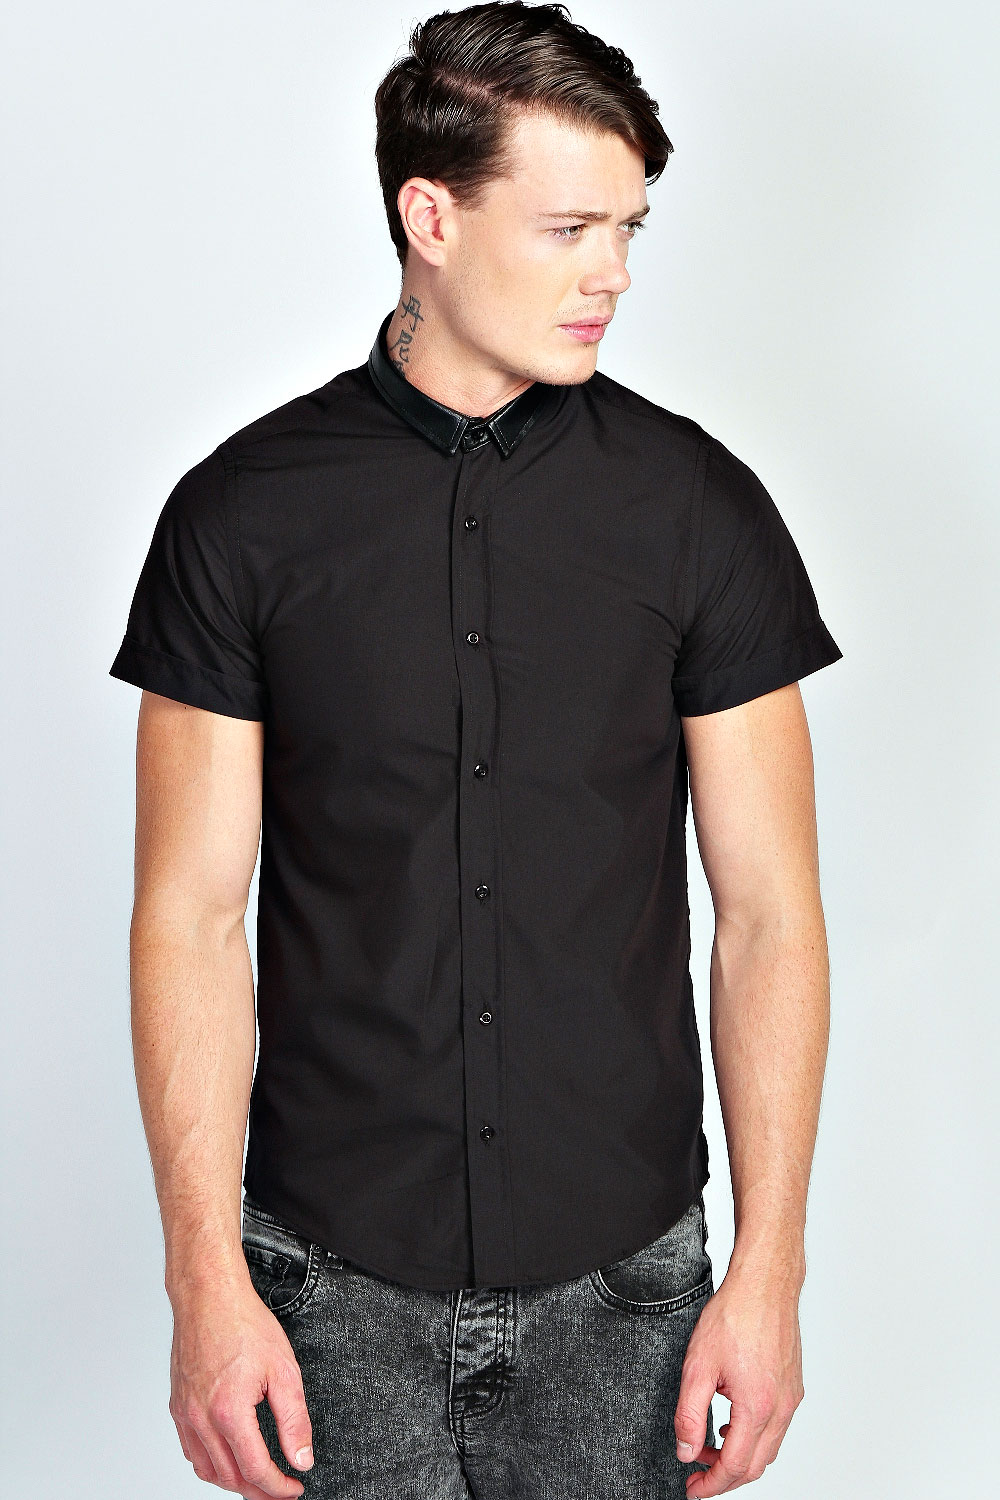 boohoo mens button front fastening short sleeve poplin top